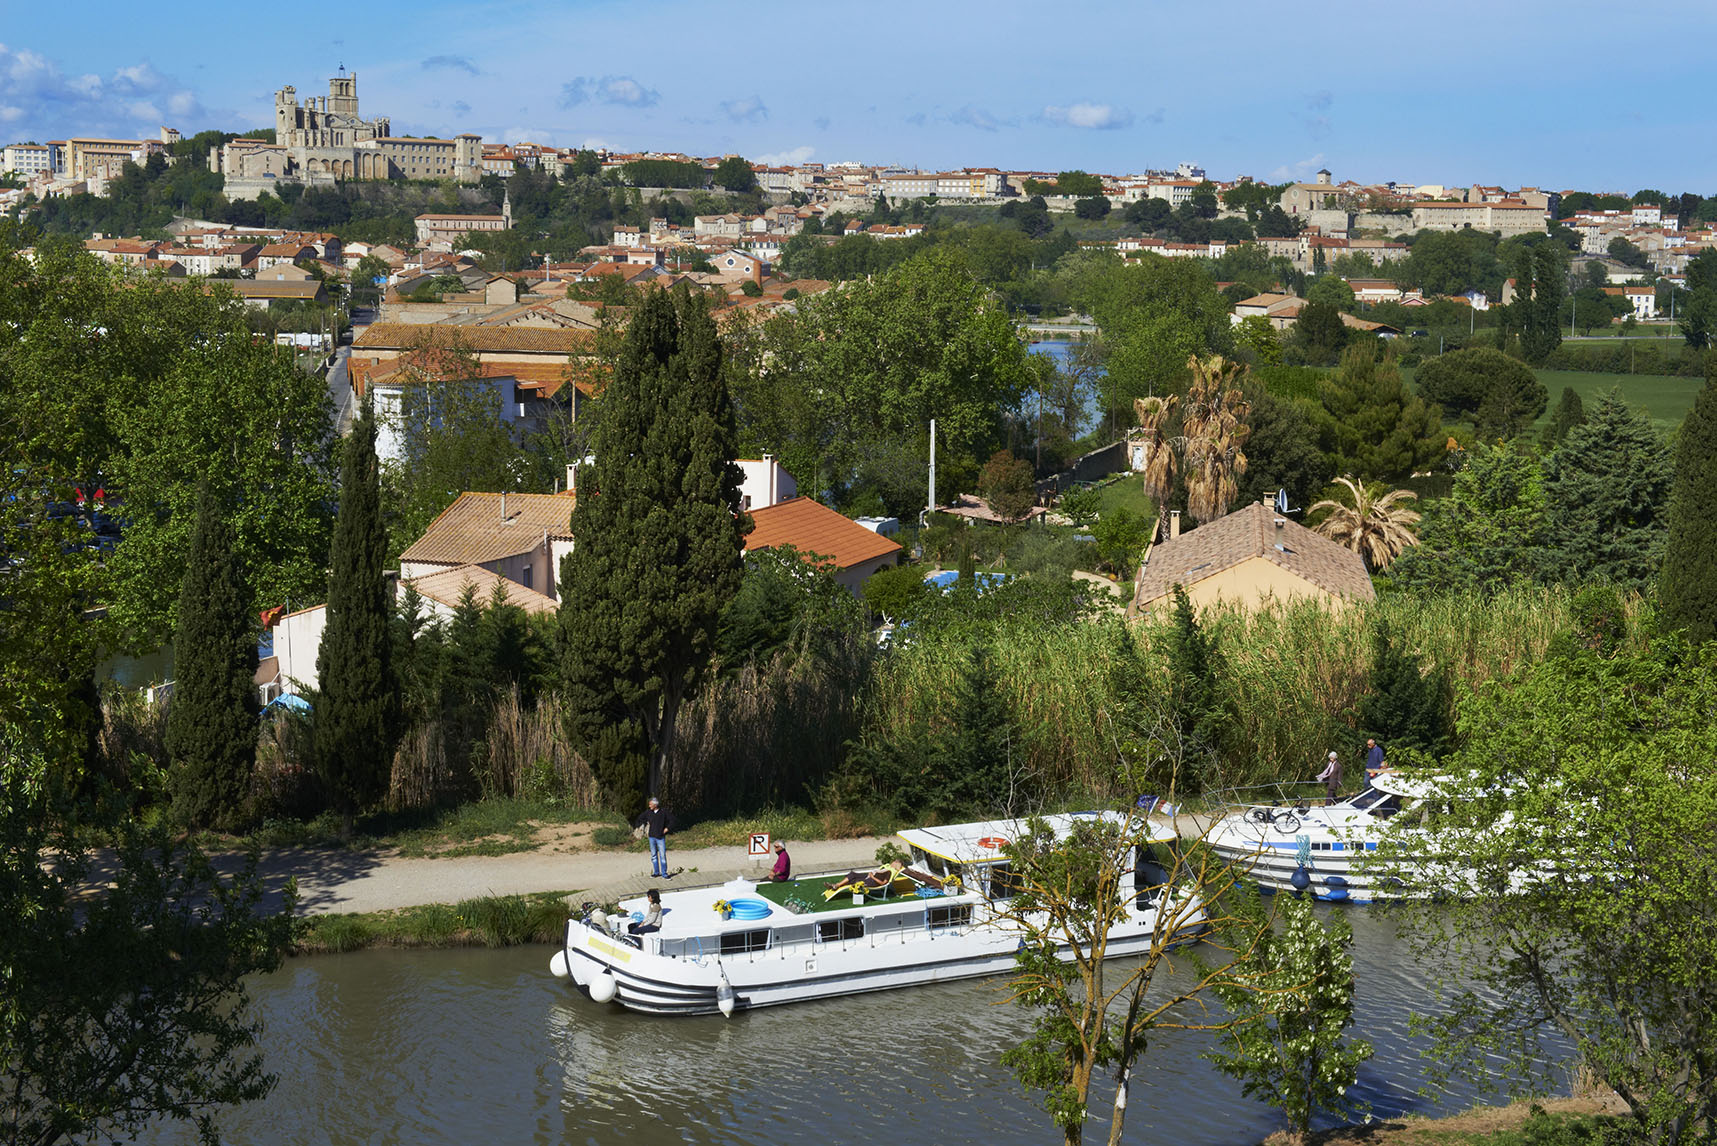 France, Herault department, Beziers and the Canal du Midi